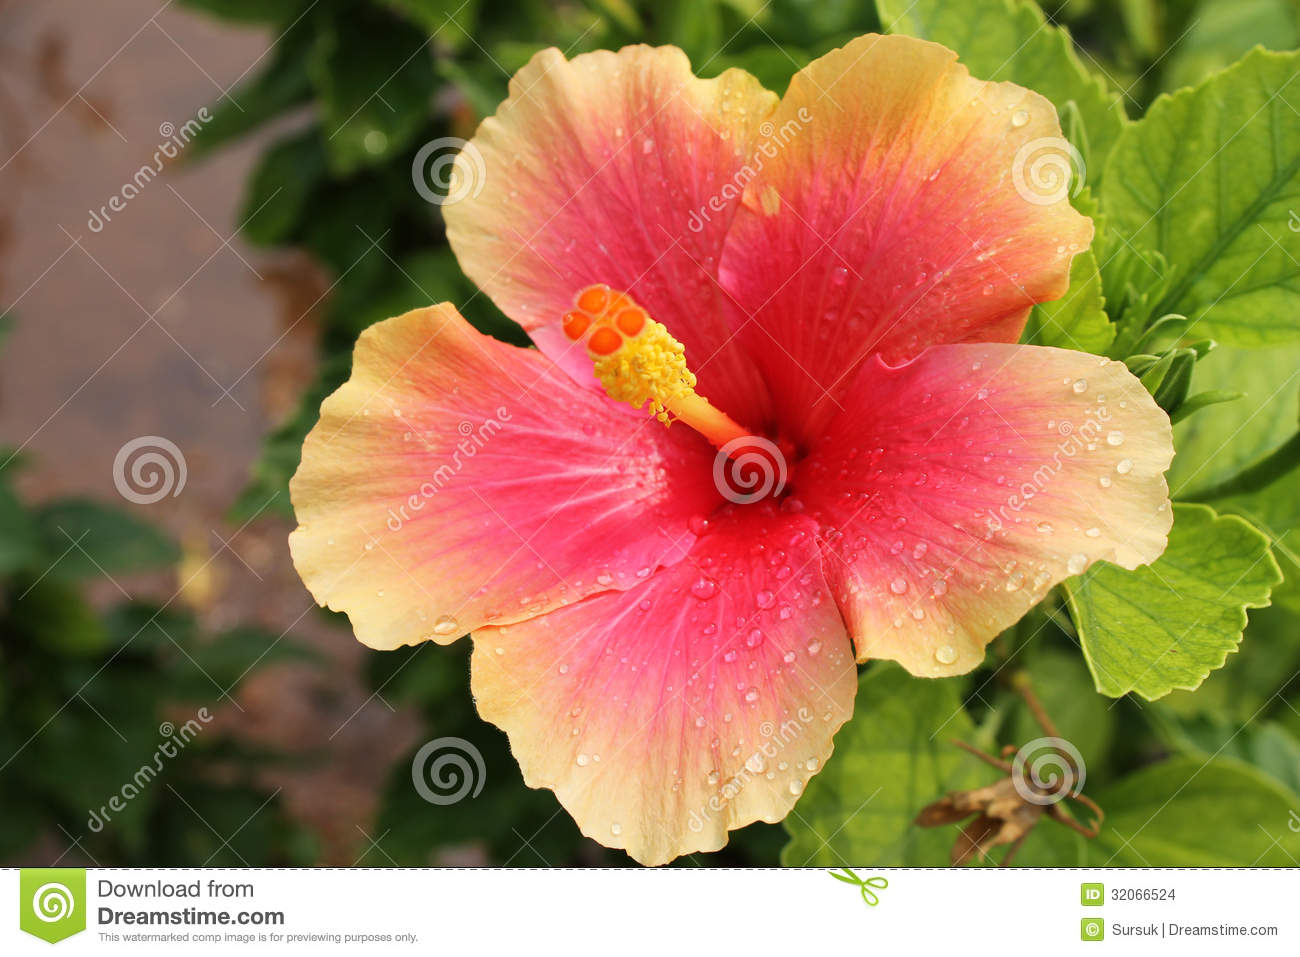 picture of rose of sharon flower